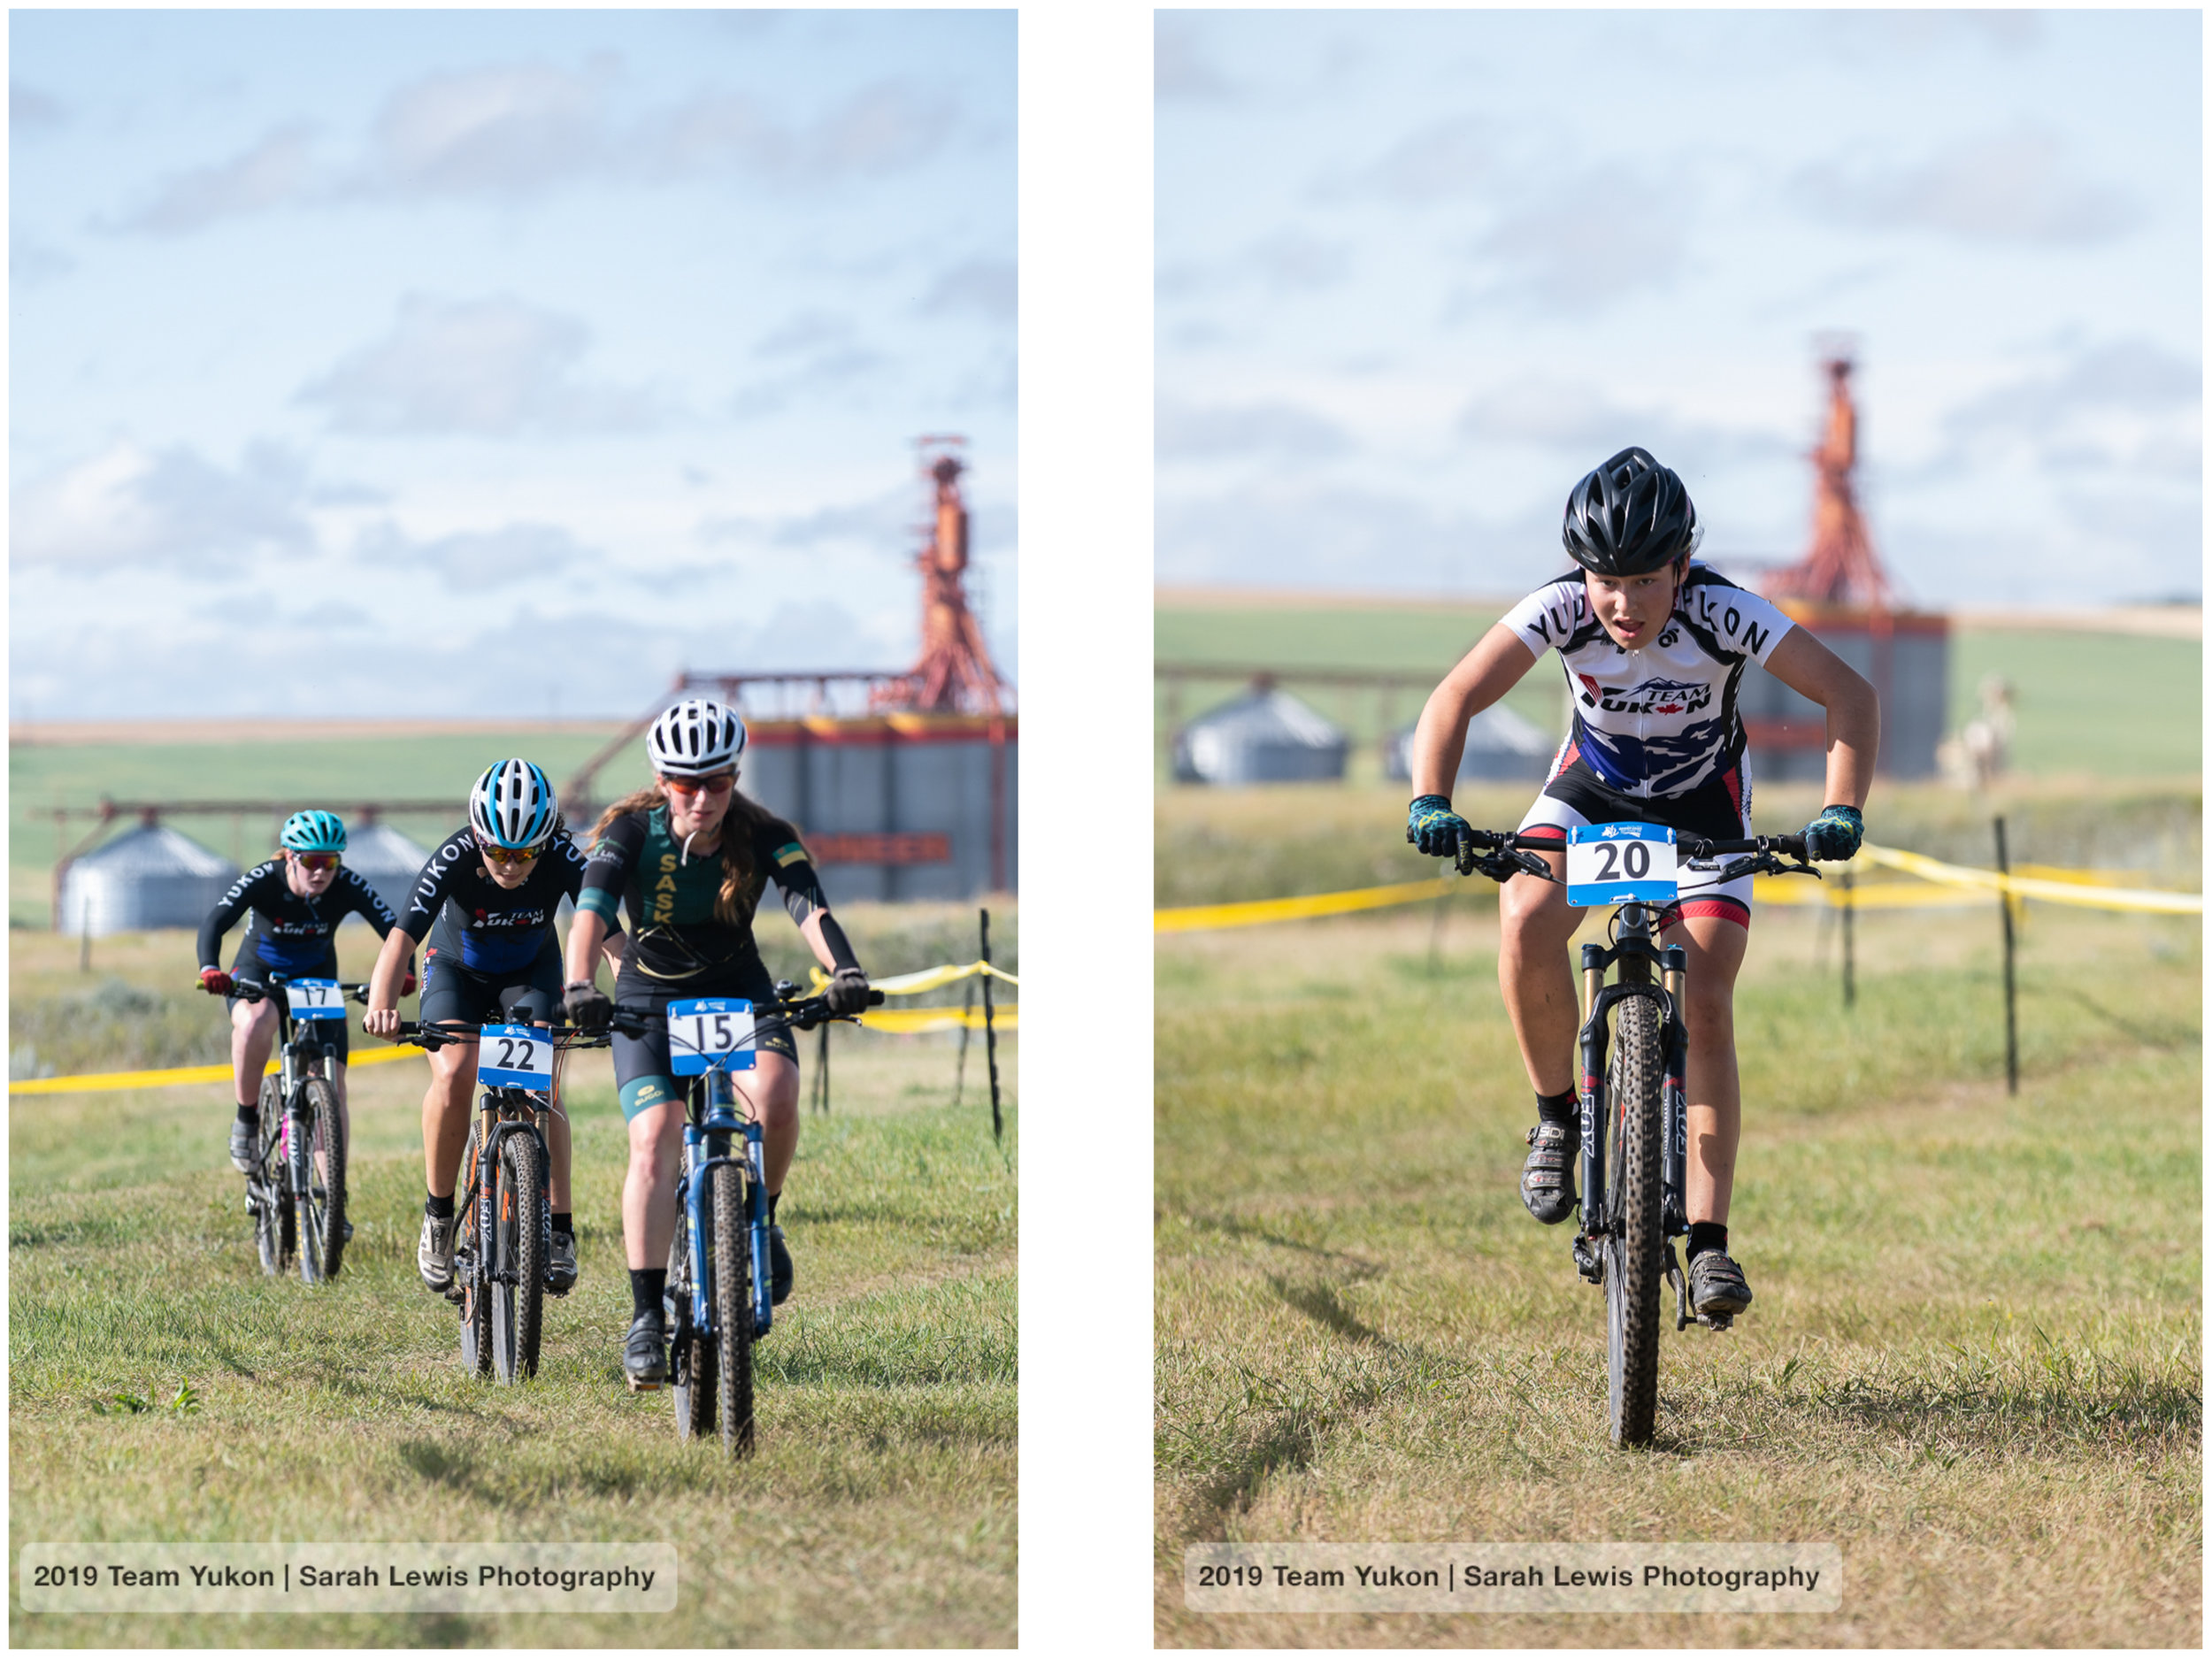 Aïsha (middle), pushing hard to finish 8th on 21 racers. Mara on the right. I love that we see the grain elevator at the back, so Saskatchewan!